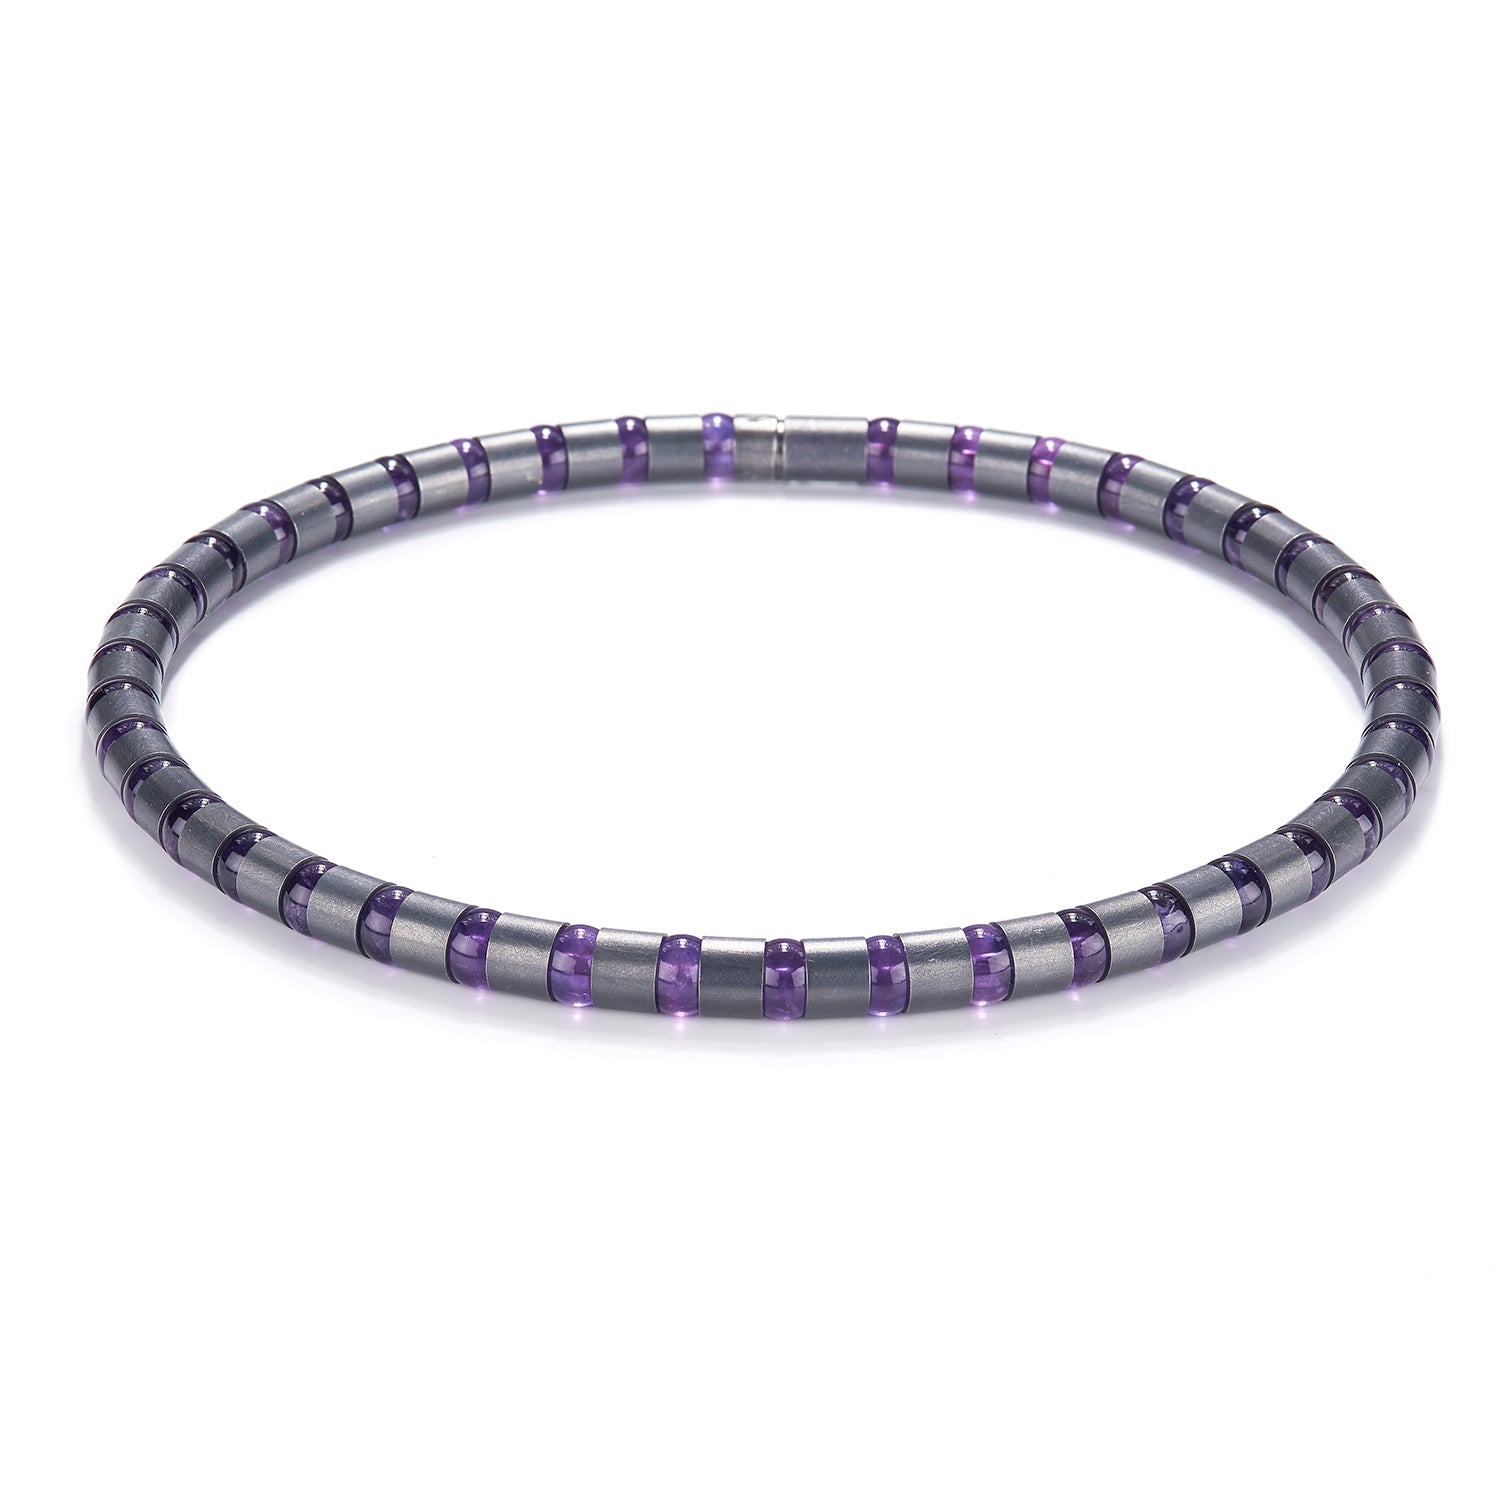 Cleopatra Oxidized Silver Collier~8mm Amethyst